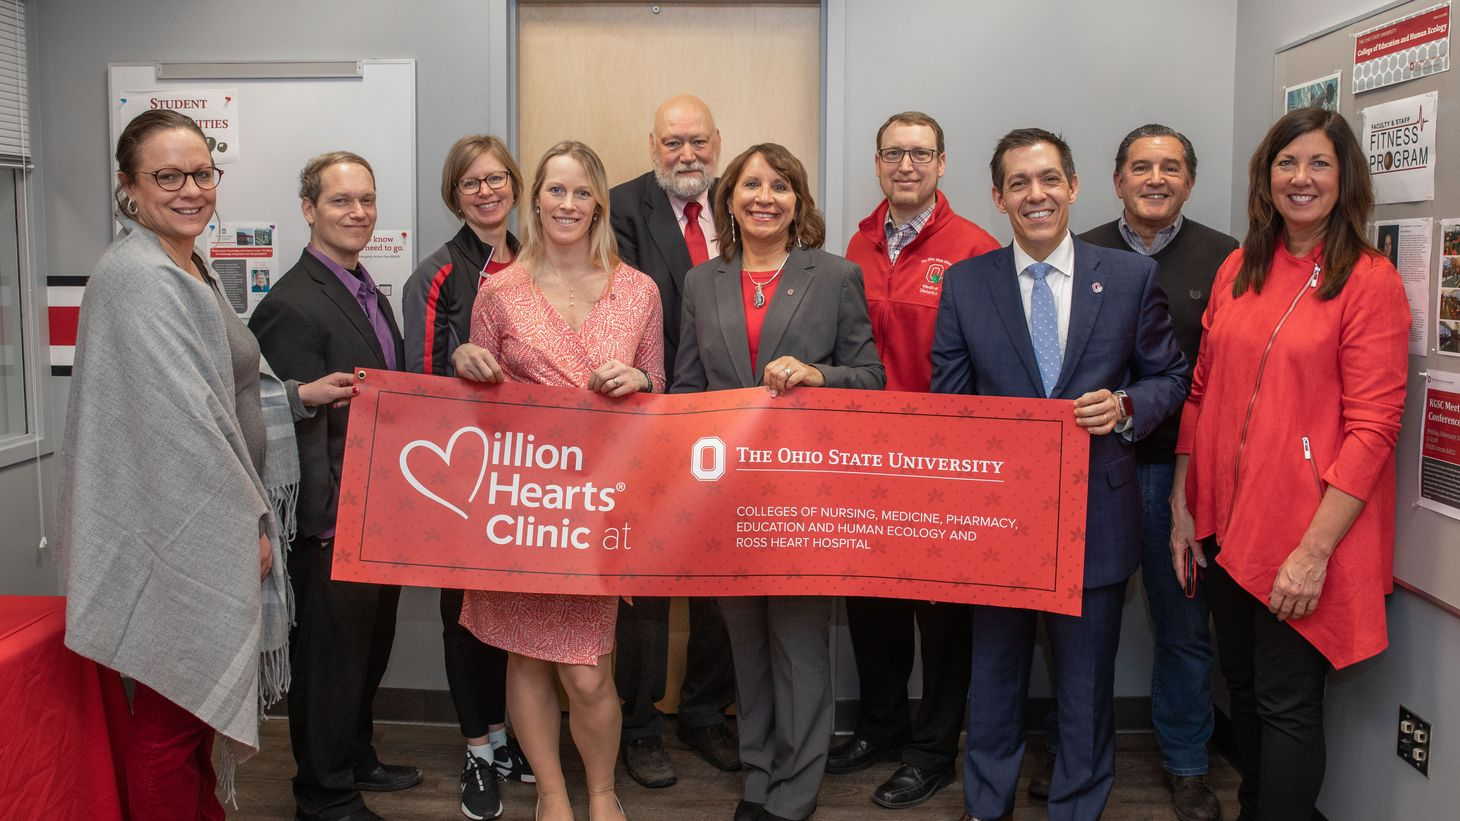 Million Hearts Clinic opening